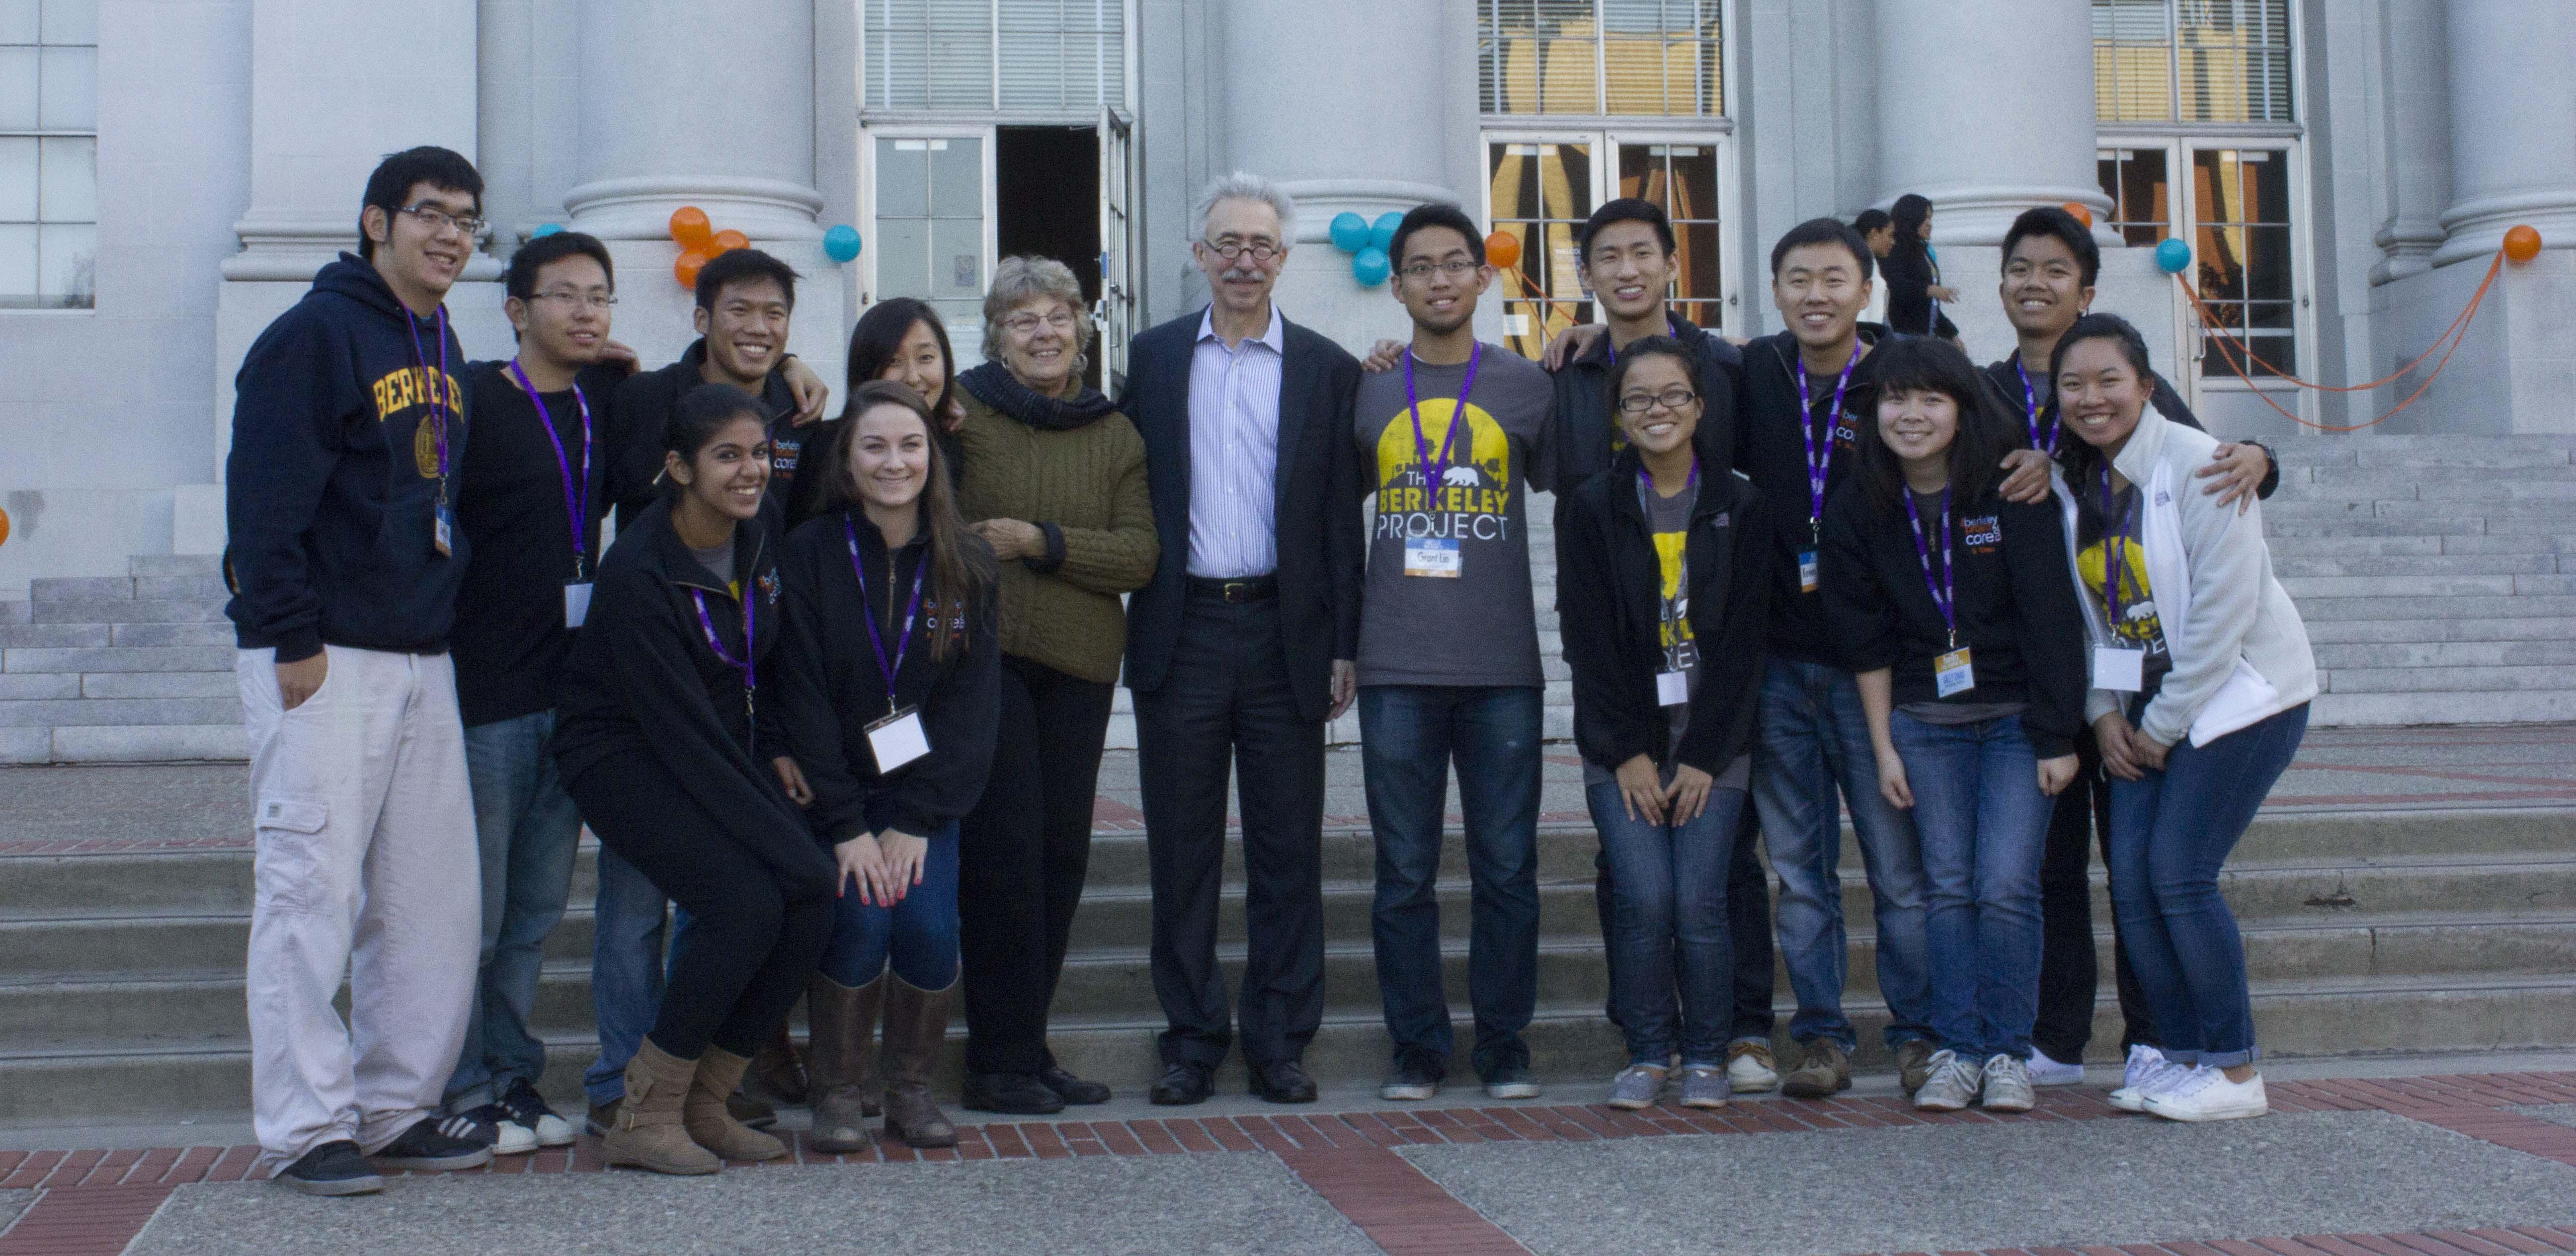 Chancellor Dirks with students